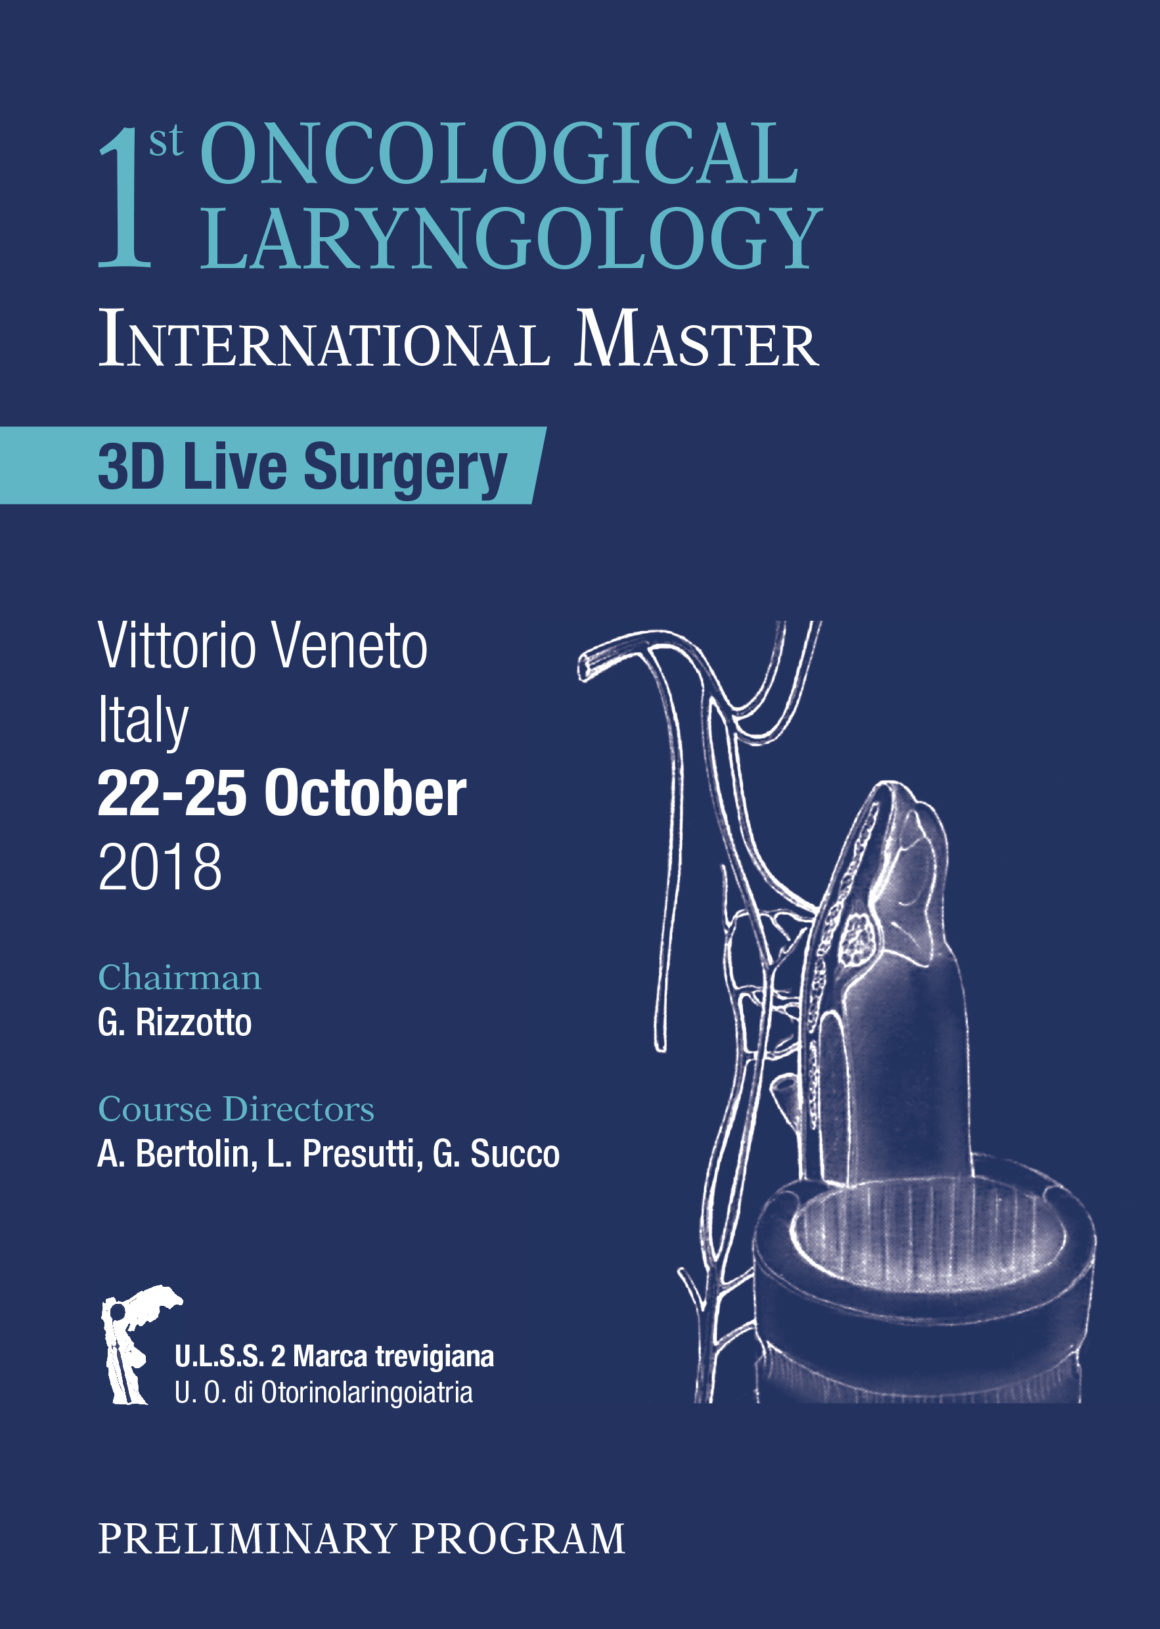 First oncological laryngology international master – Vittorio Veneto – Dal 22 al 25 Ottobre 2018